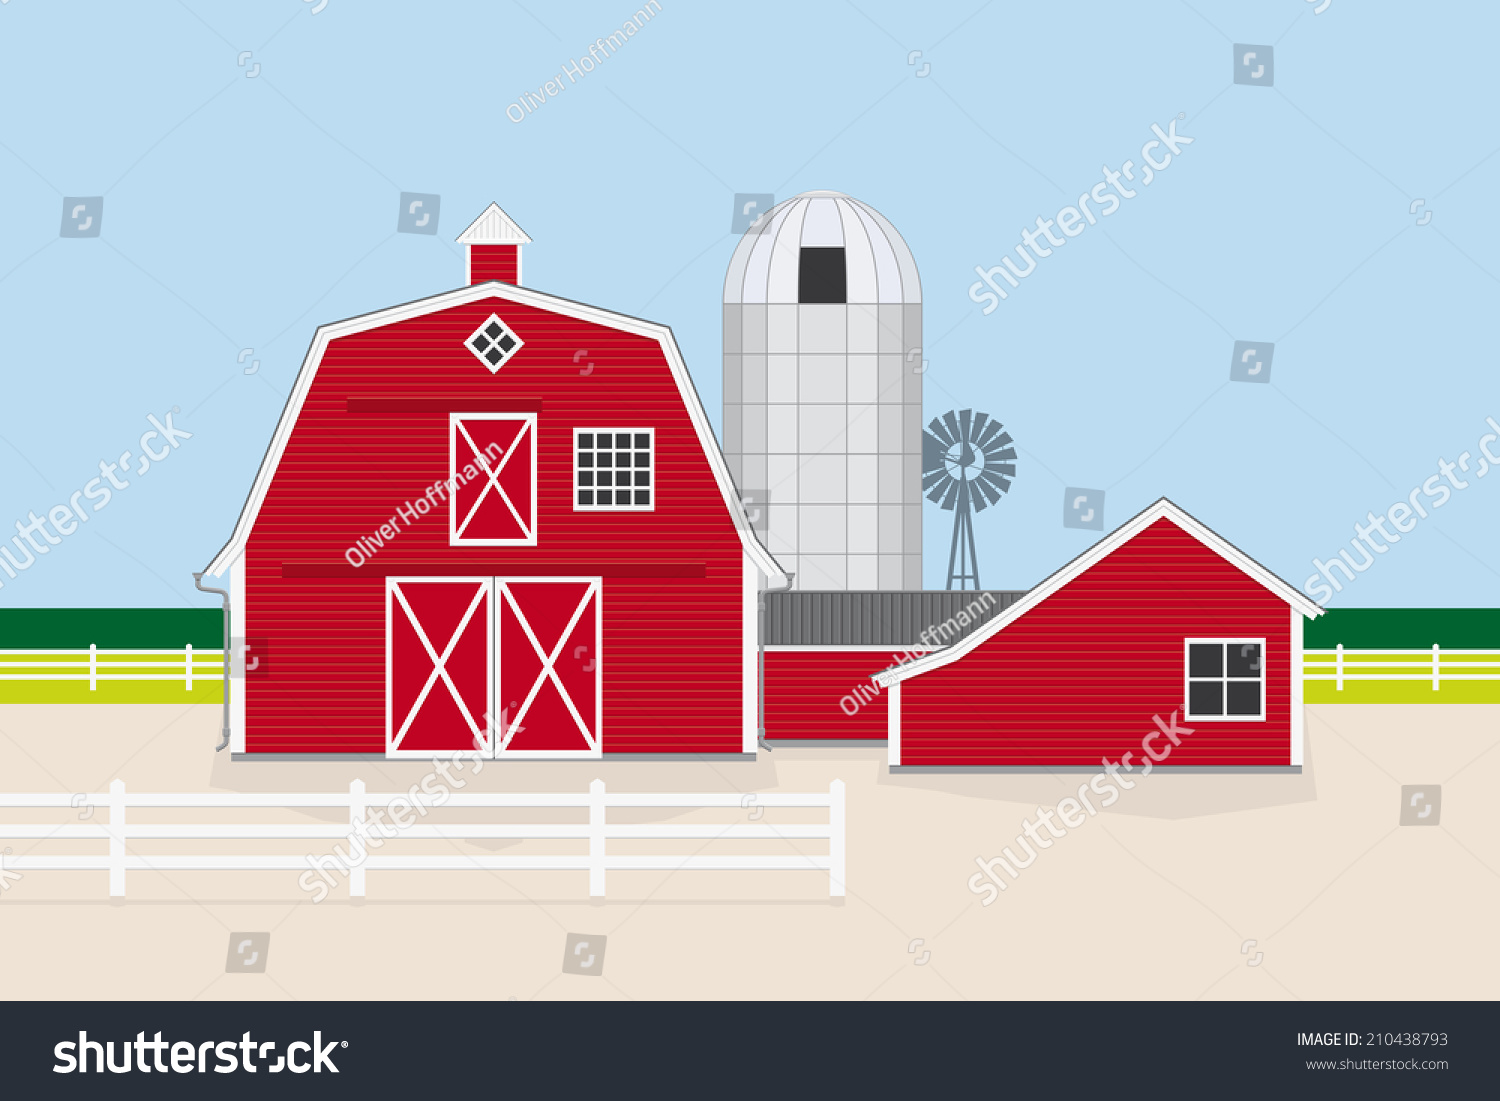 Enterprise system traditional silo view of